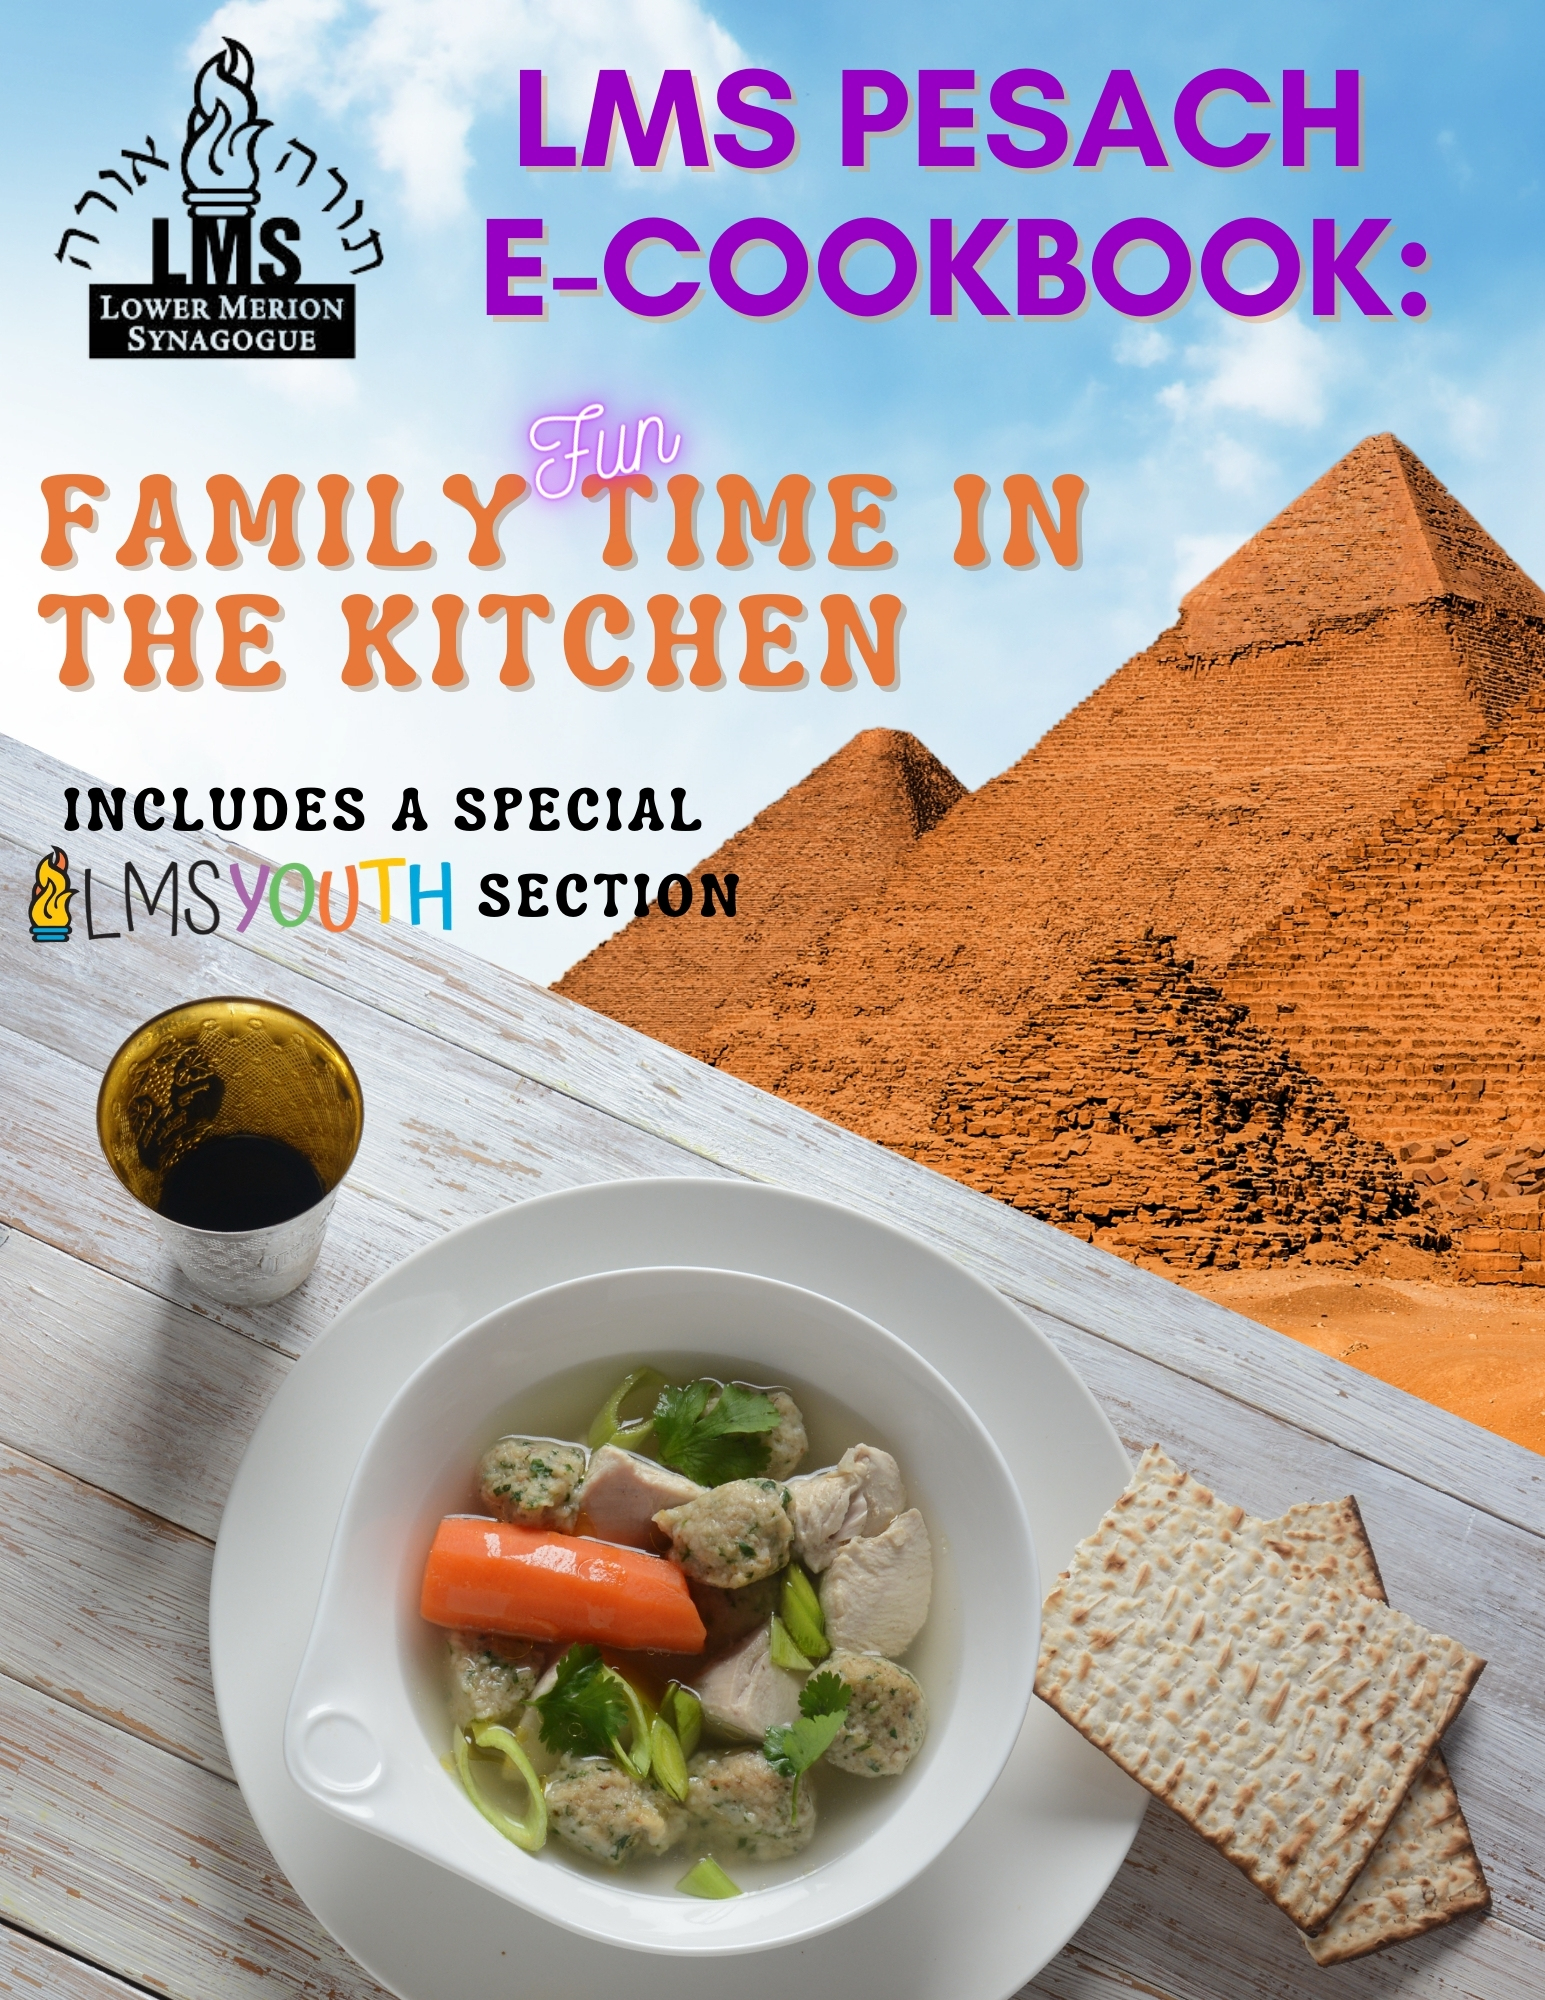 """</a>                                                                                                                                                                                      <a href=""""https://www.lowermerionsynagogue.org/form/Pesach%20Recipes"""" class=""""slider_link""""                             target="""""""">                             To Submit a Recipe Click Here                            </a>"""